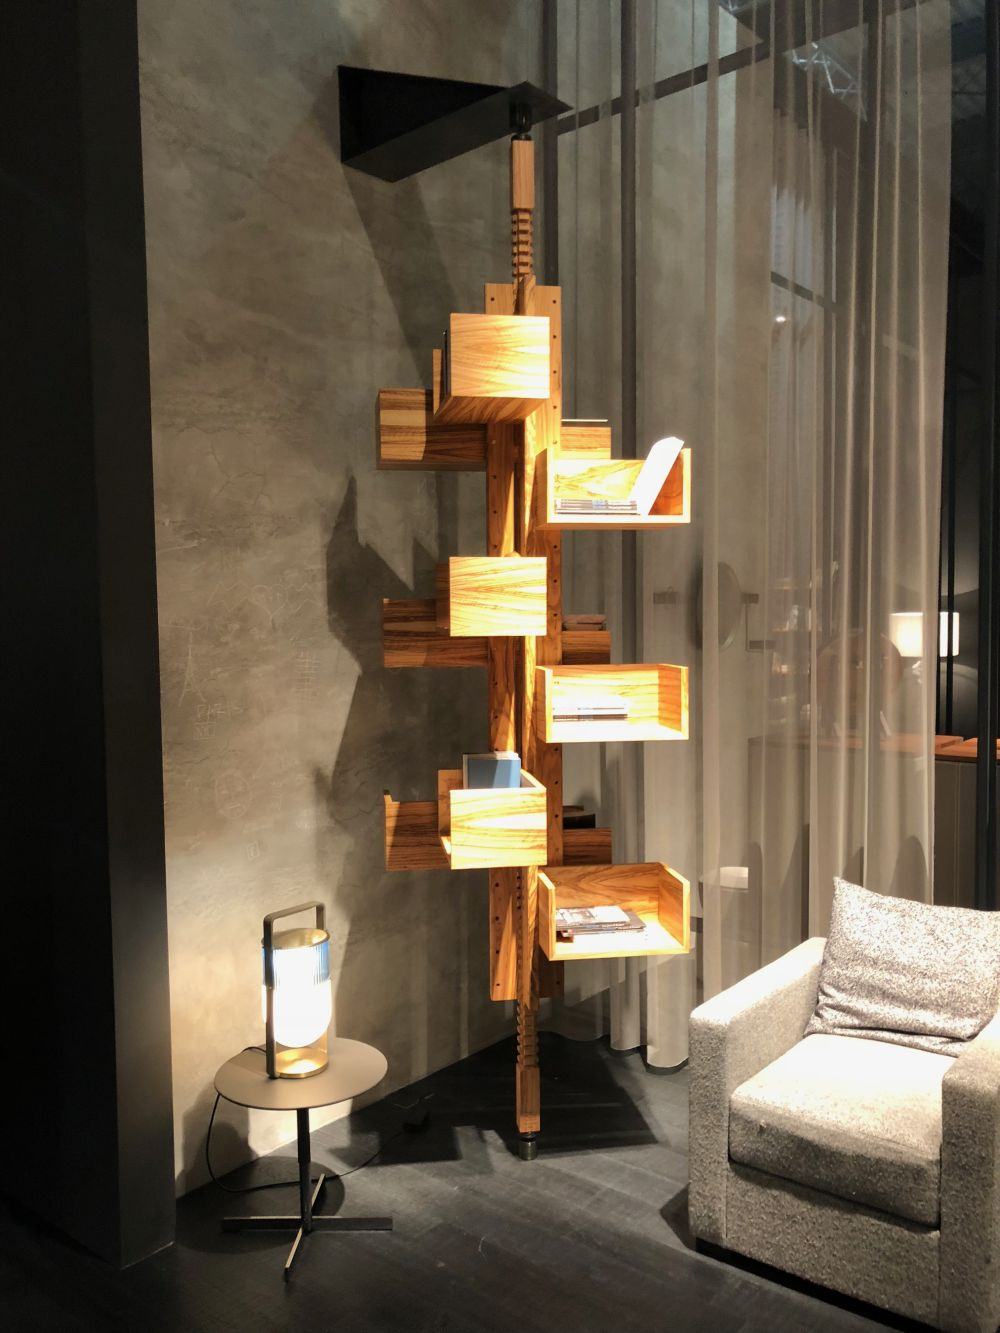 Design Highlights From Salone Del Mobile 2018 From